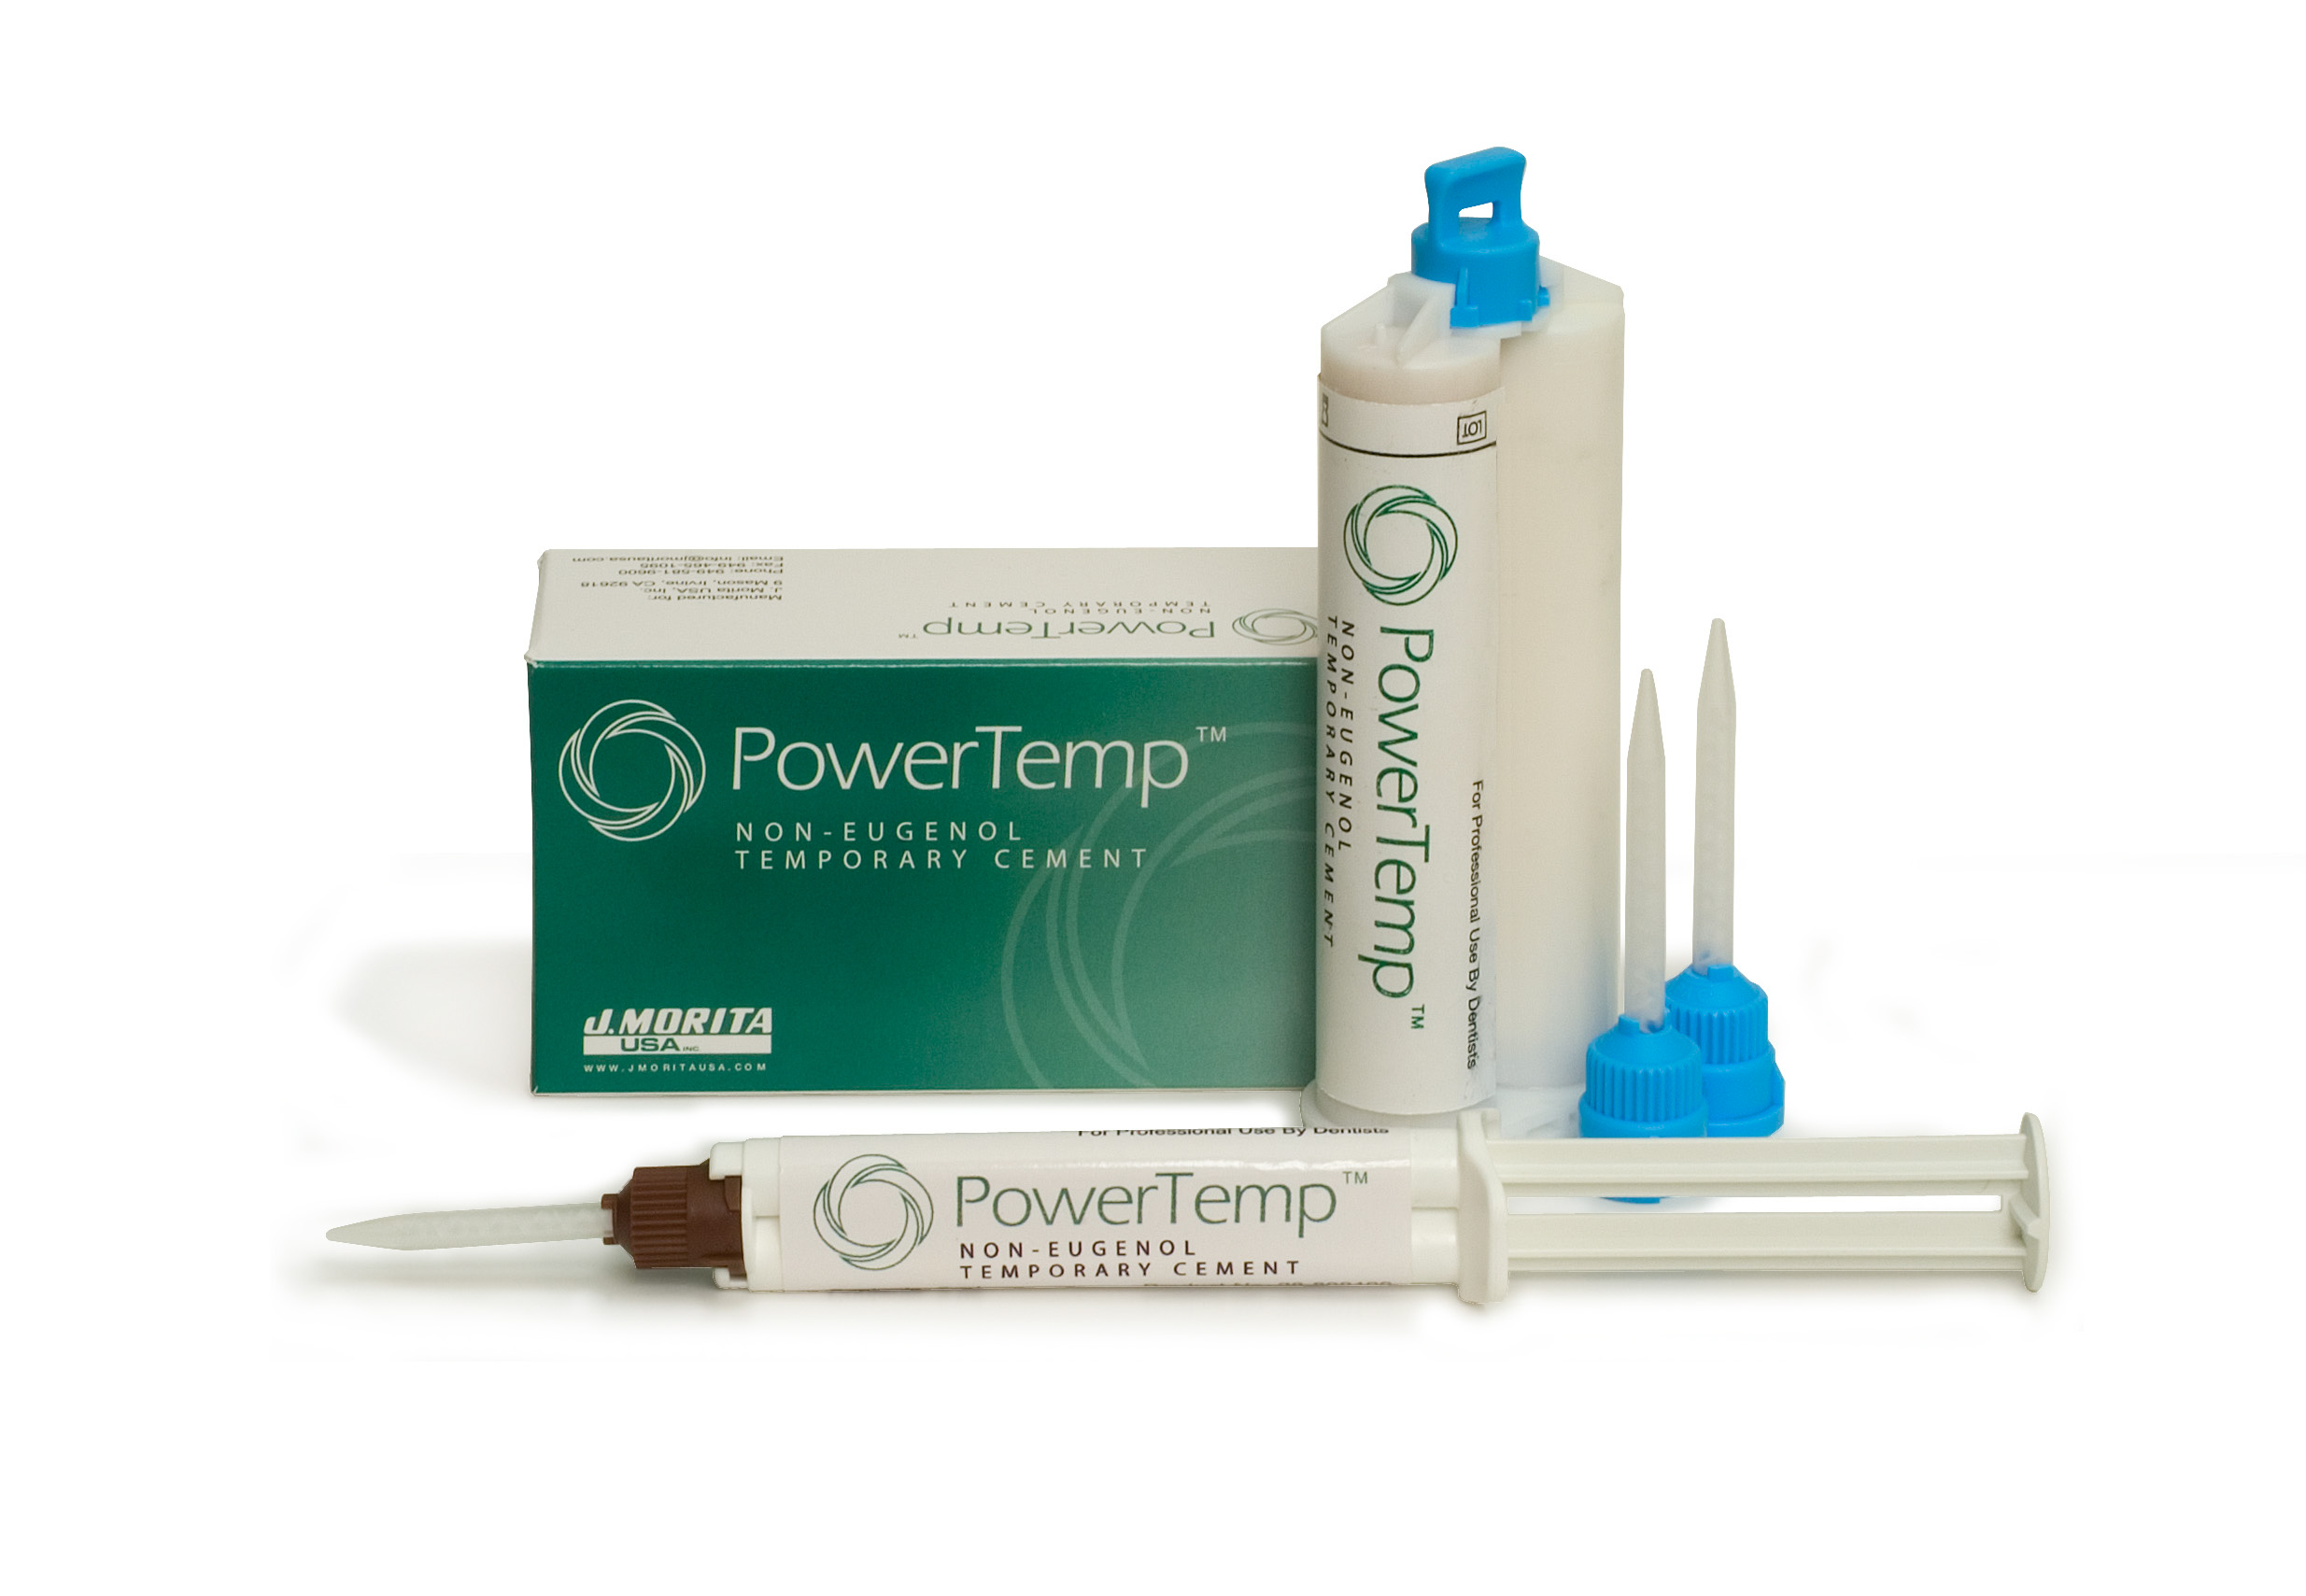 PowerTemp Temporary Cement